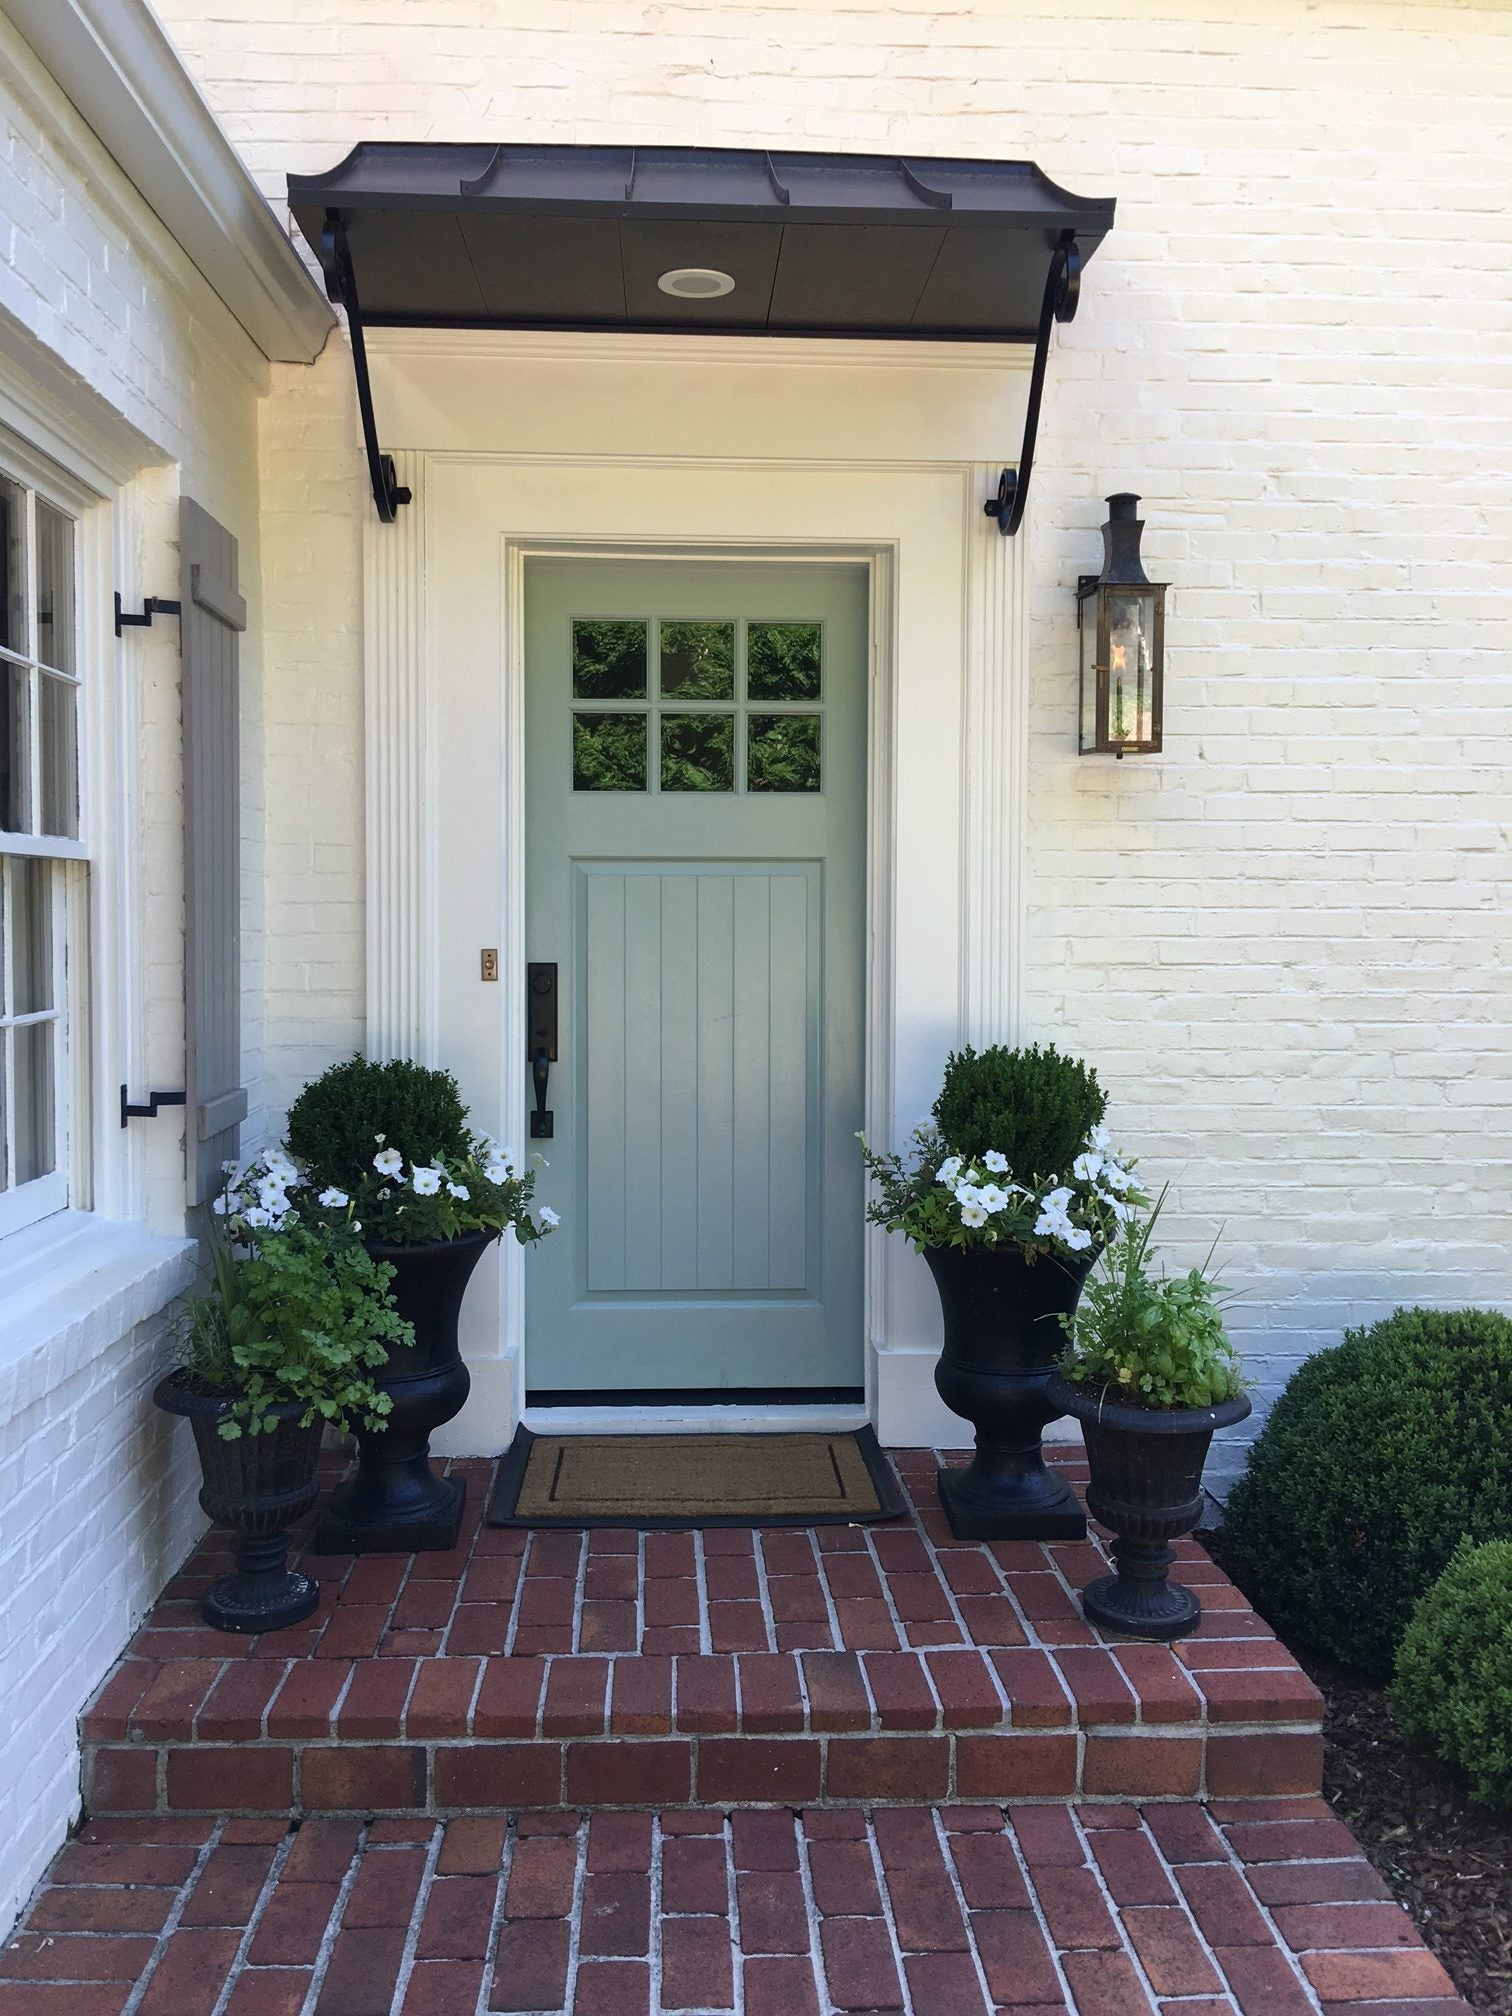 Pssst: Want to know the paint colors? Meg is sharing the secret: All from Sherwin Williams, the outside is Alabaster, the shutters are Pavestone and the front door is Wyeth Blue.